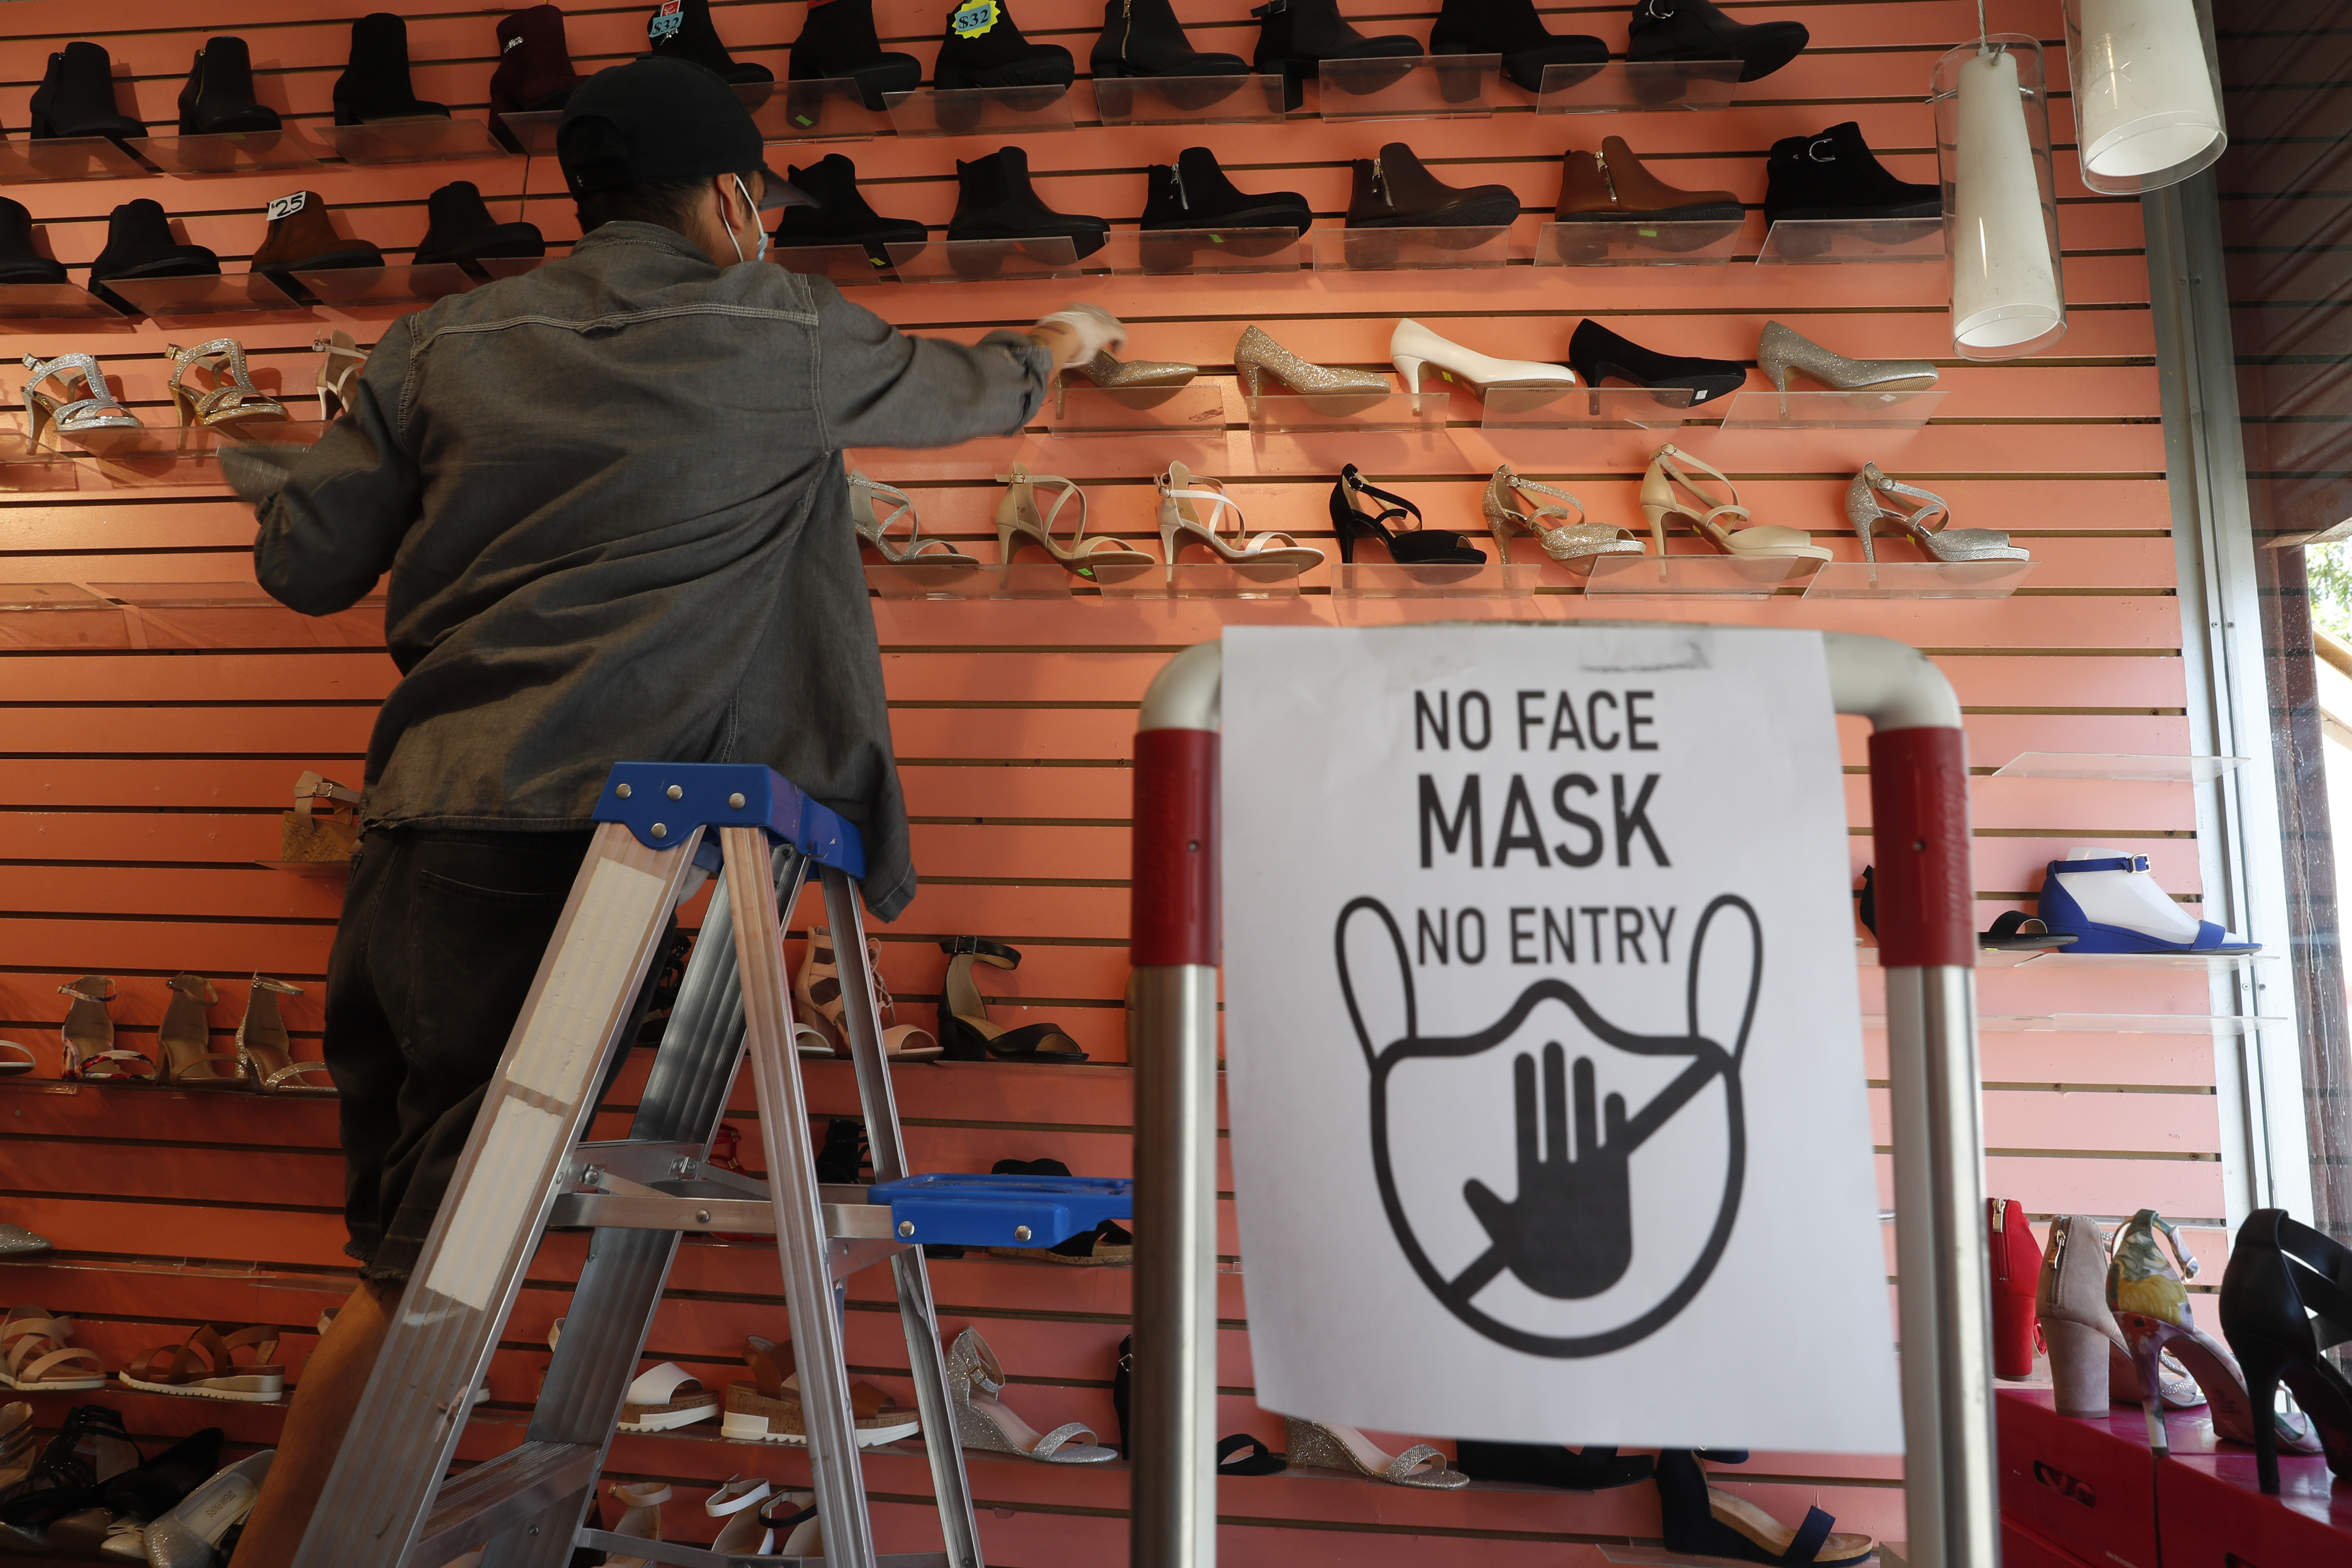 Manager Angel Ramos arranges shoes on a display in Top shoes, June 8, 2020, in the Brooklyn borough of New York, after retail stores were allowed to reopen to customers on the first day marking Phase 1 reopening for New York City.